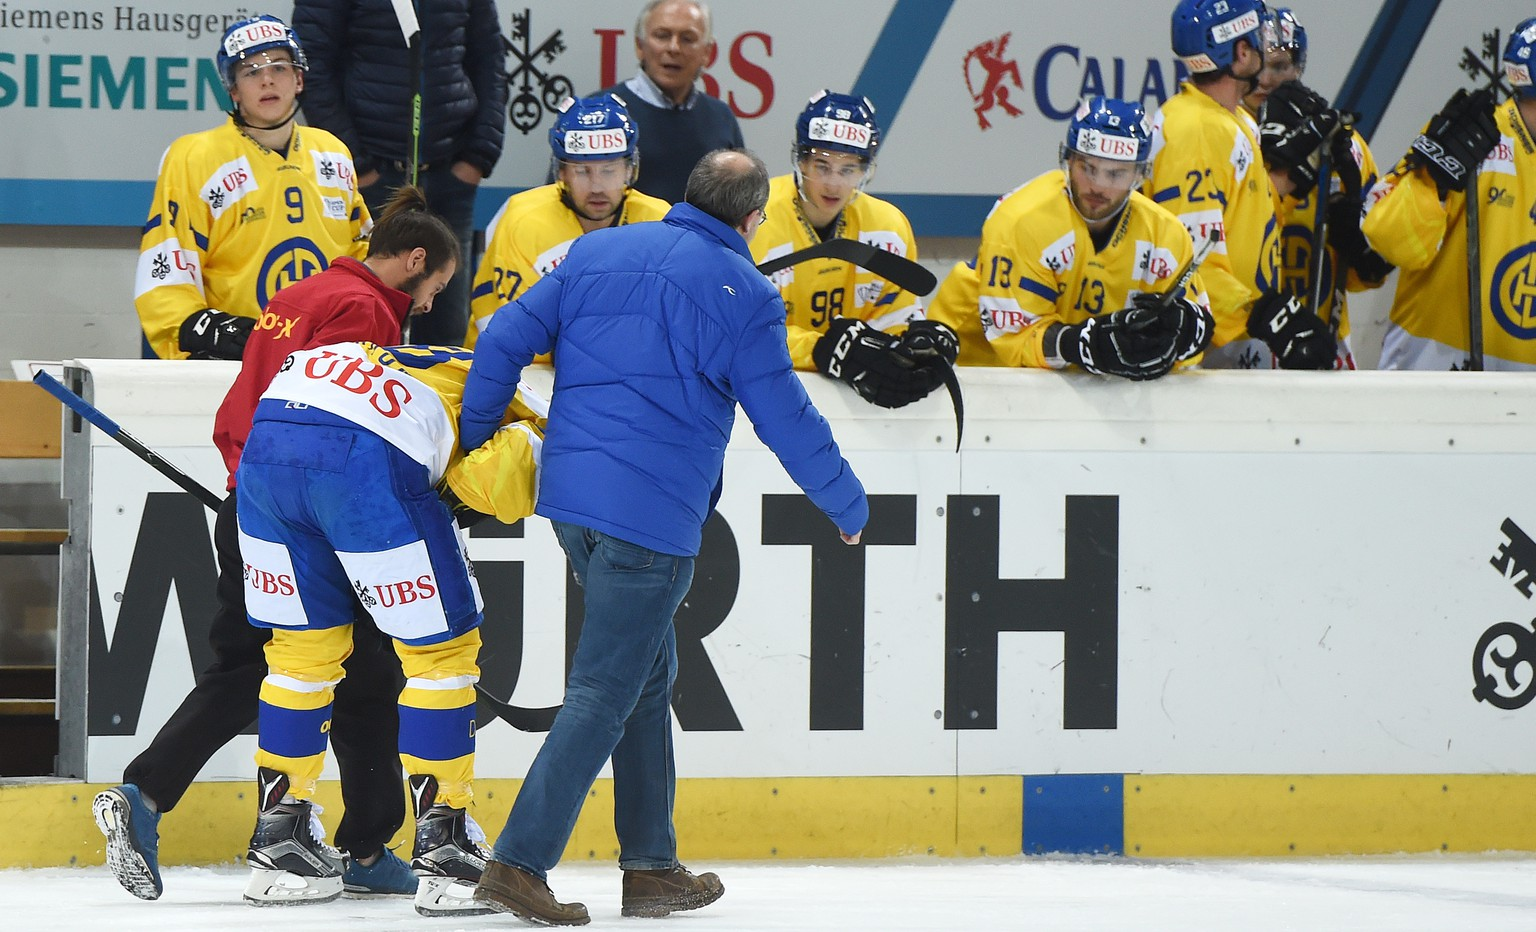 Davos Gregory Sciaroni goes out after a check during the game between Switzerlands HC Lugano and Switzerlands HC Davos at the 90th Spengler Cup ice hockey tournament in Davos, Switzerland, Friday, December 30, 2016. (KEYSTONE/Melanie Duchene)